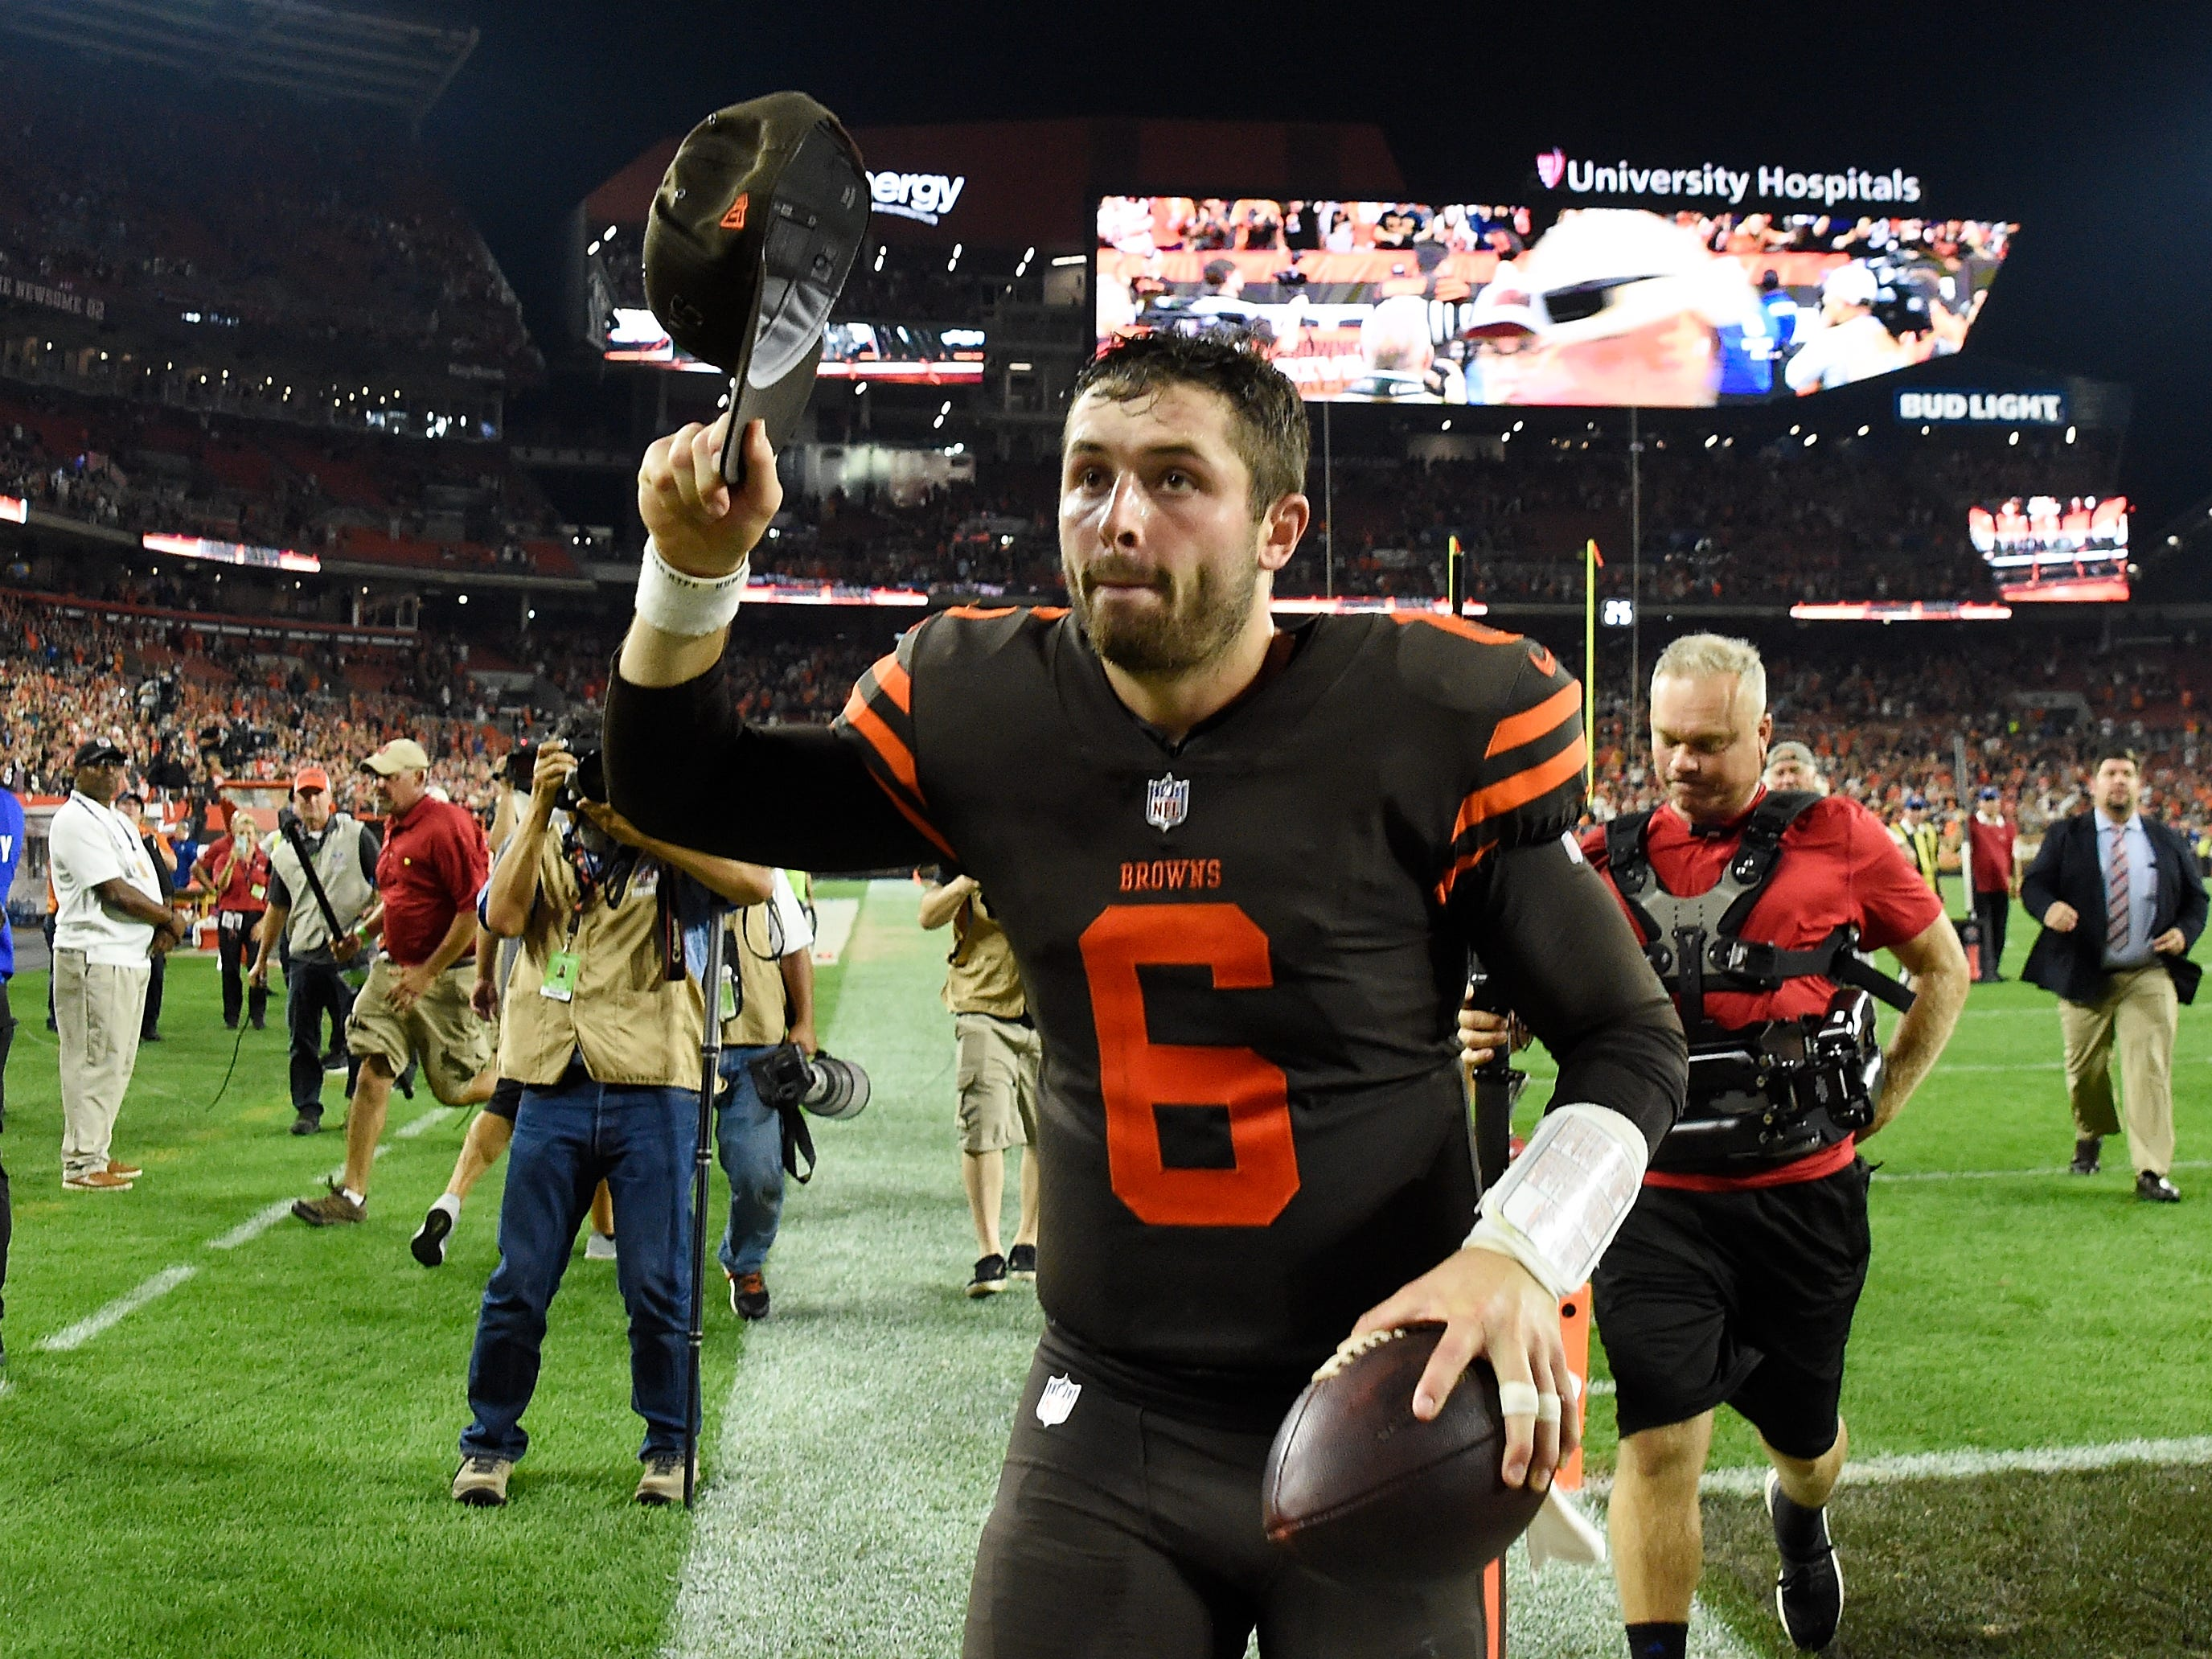 Baker Mayfield runs off the field after the Browns' 21-17 win over the Jets at FirstEnergy Stadium.